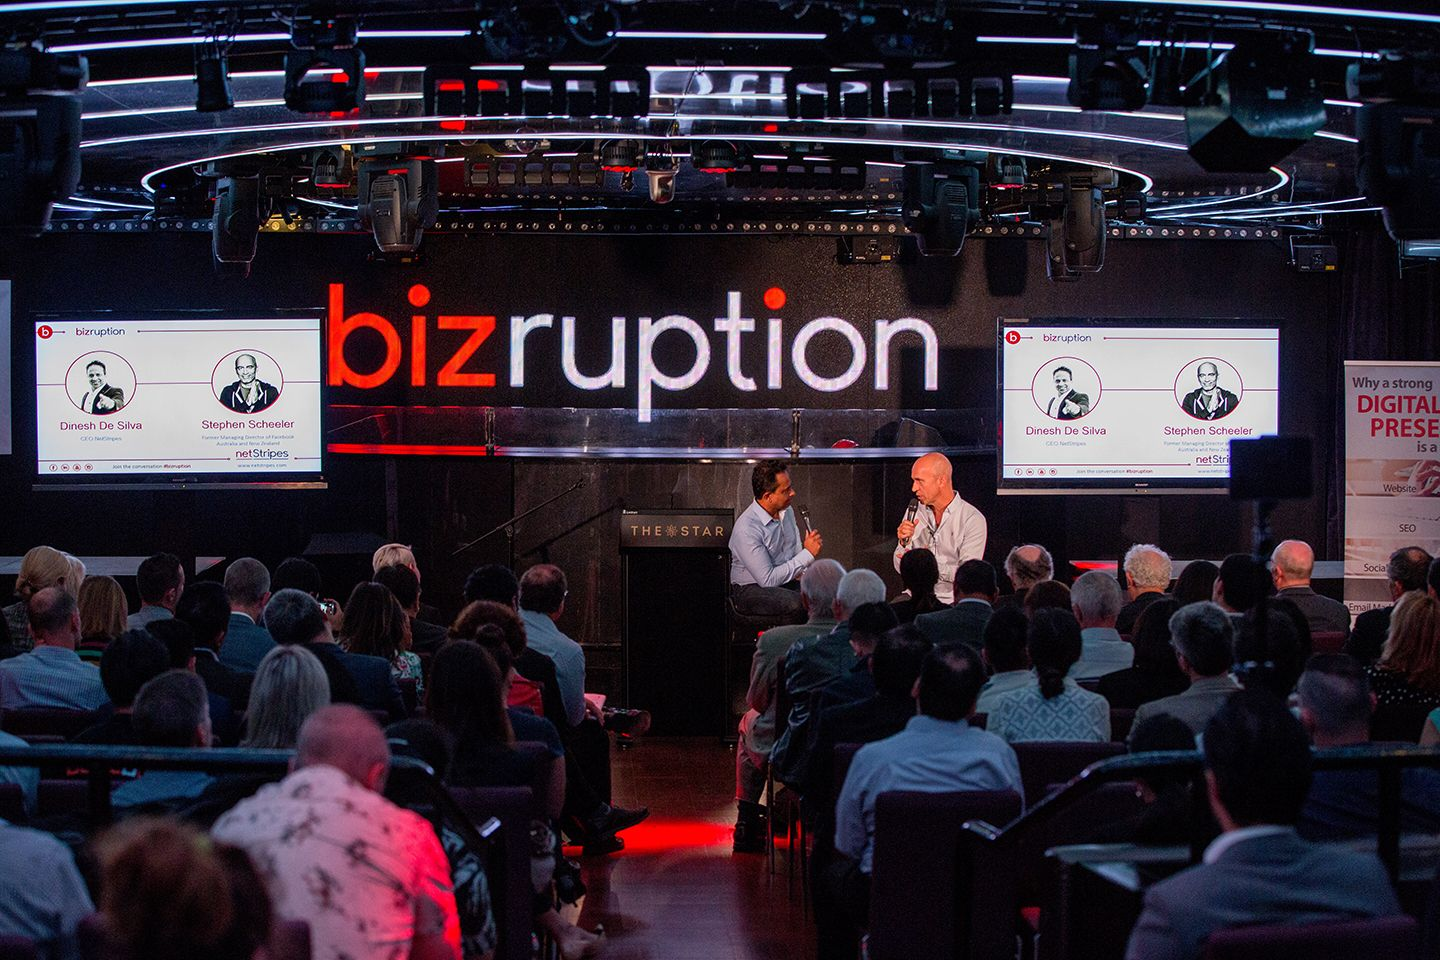 BIZRUPTION  - Small Business Owners Disrupting Industry